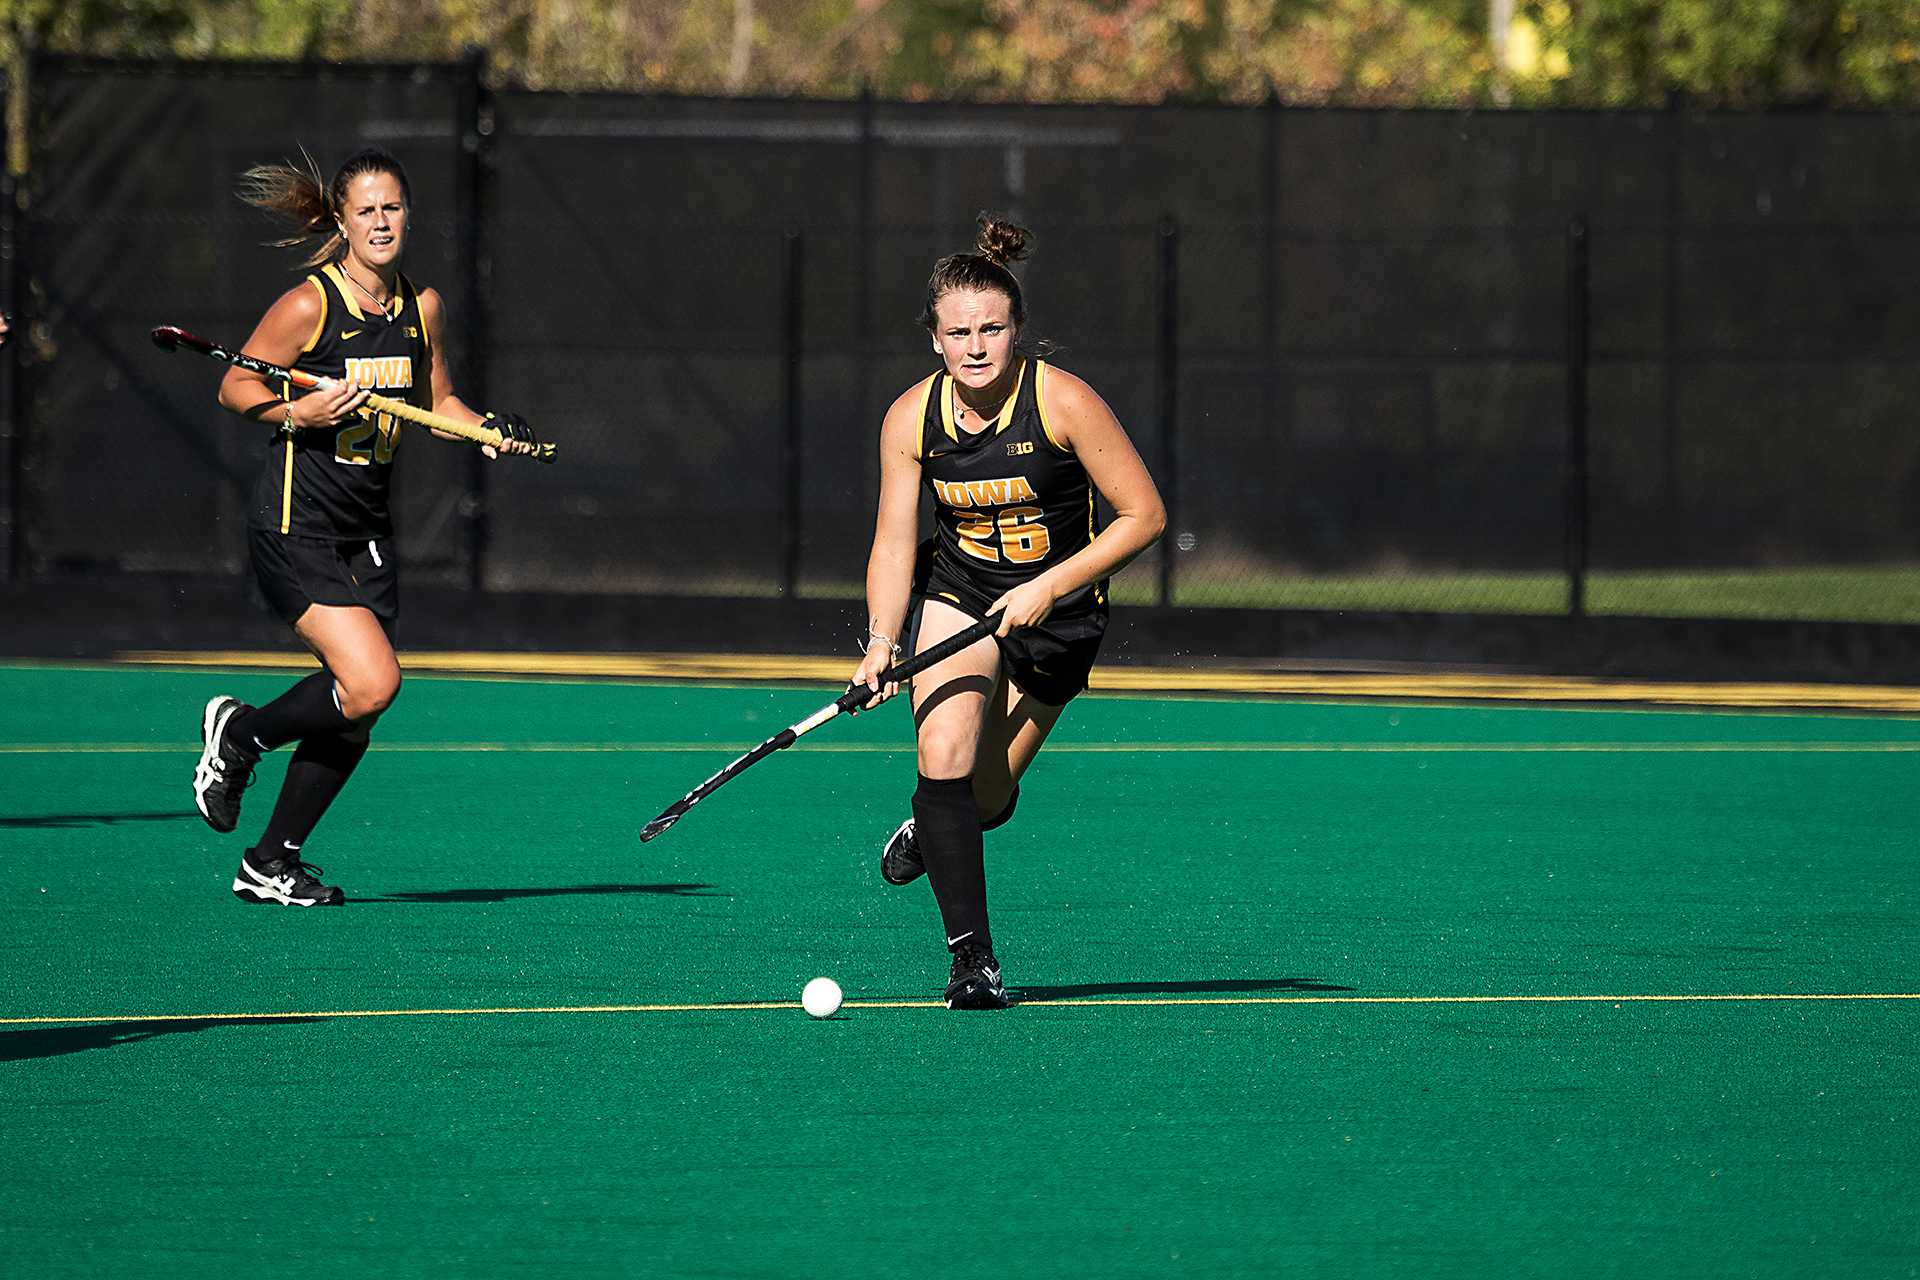 Maddy Murphy looks upfield during a match against the University of Indiana Field Hockey team on Friday, 29 Sept., 2017. Iowa won the match 4-3. (David Harmantas/The Daily Iowan)